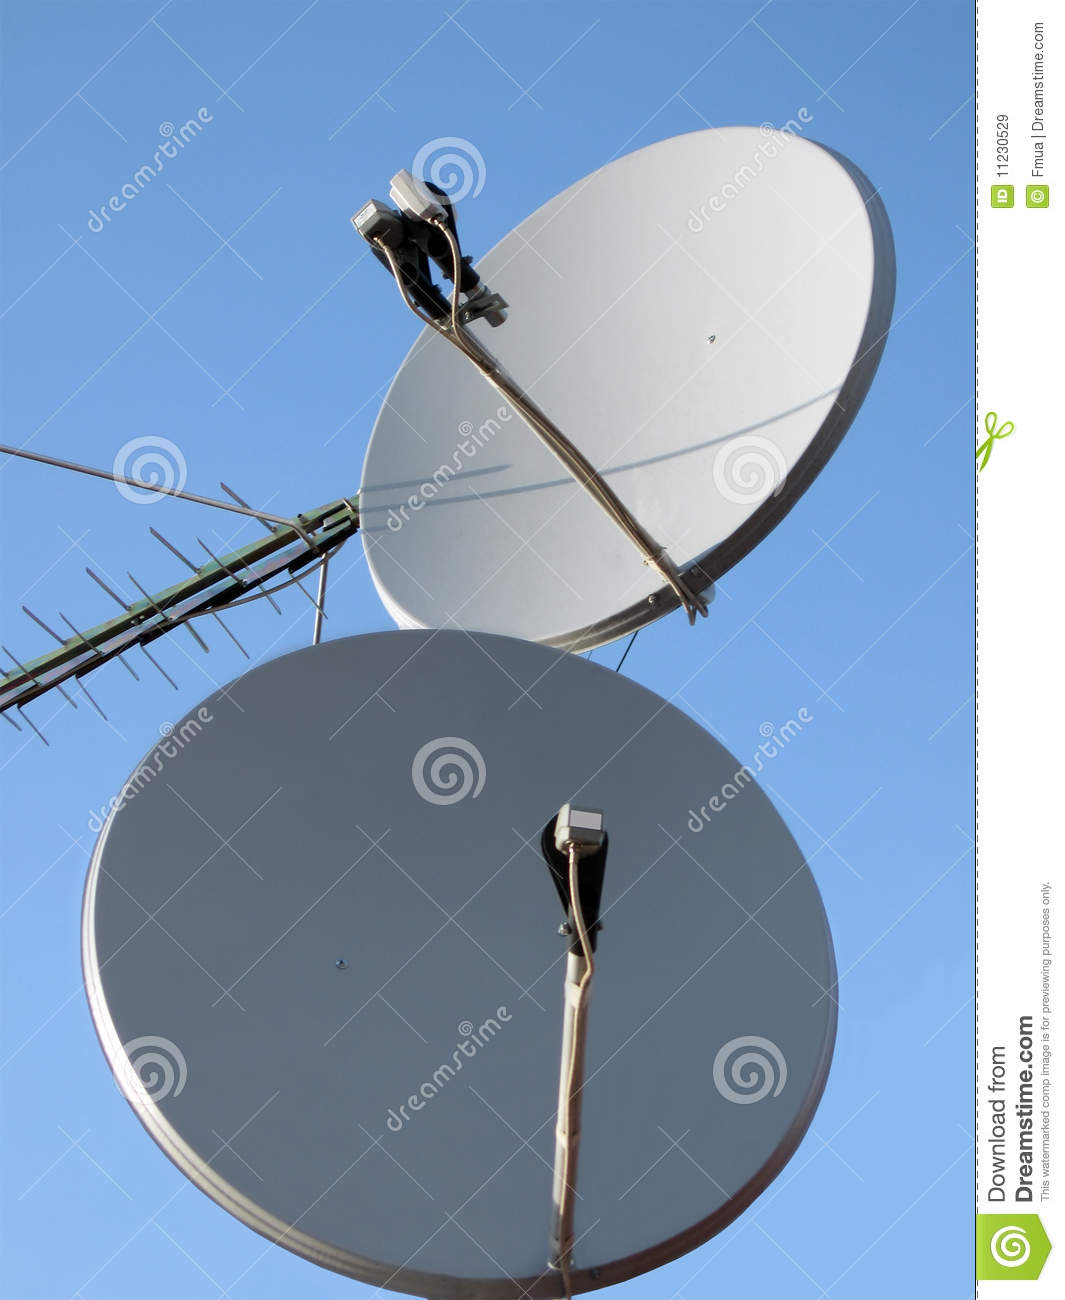 hight resolution of satellite dish telecommunication technology radio signal antenna radio antenne for wireless mobile phone connections mobile gsm umts on blue sky